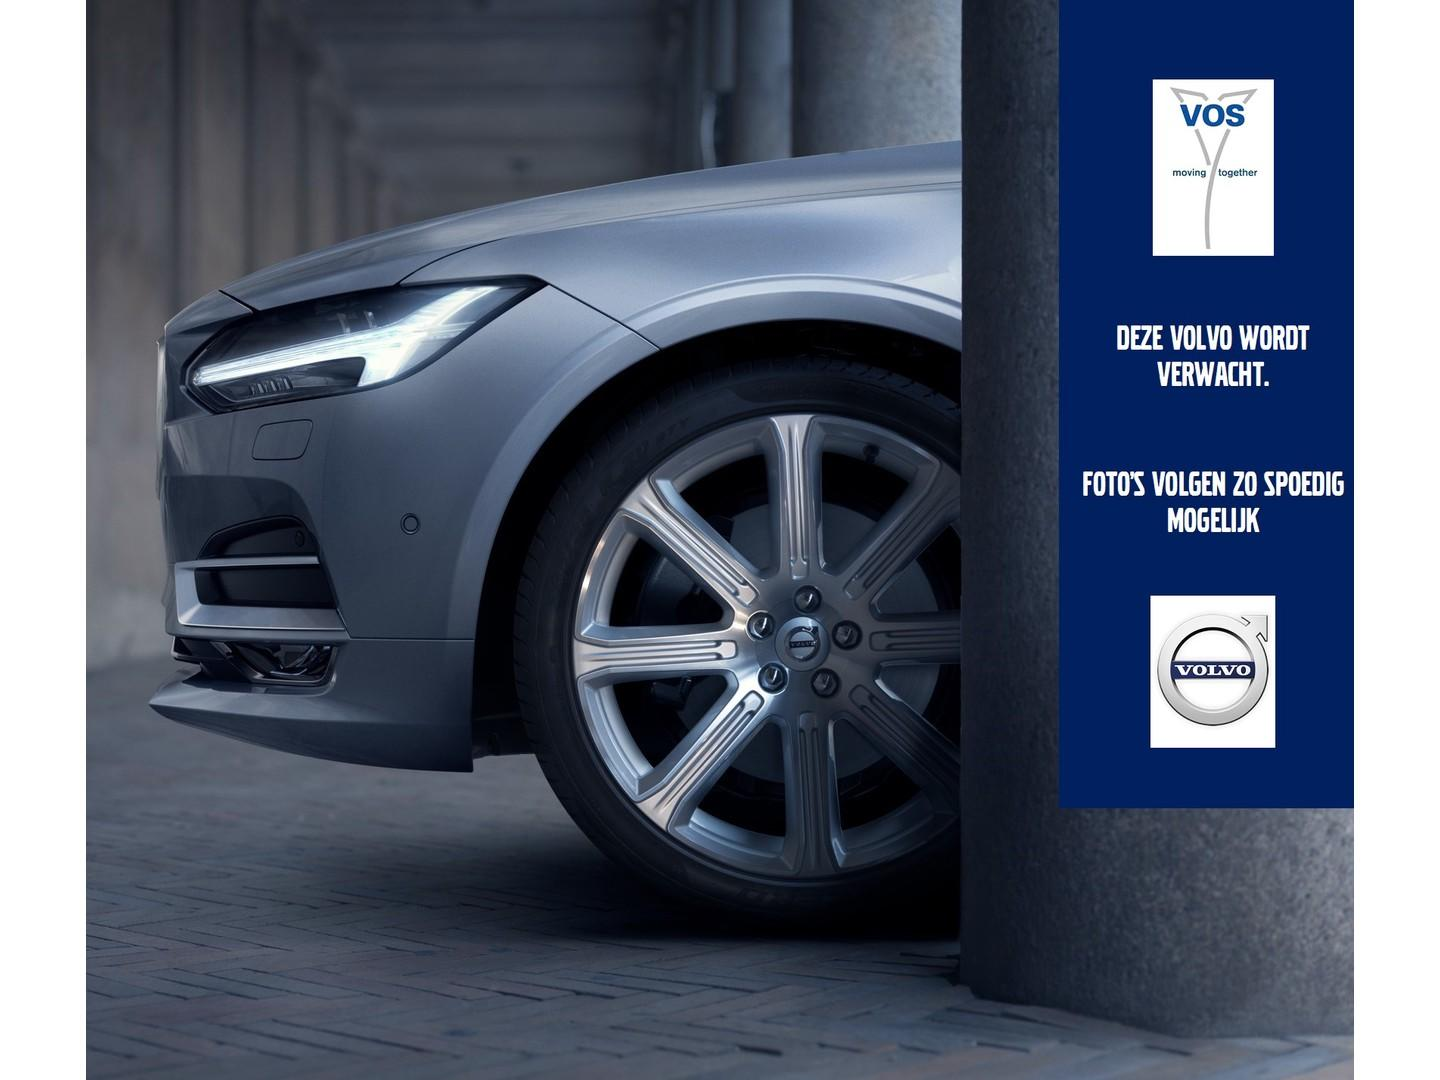 Volvo S60 2.0t intro edition